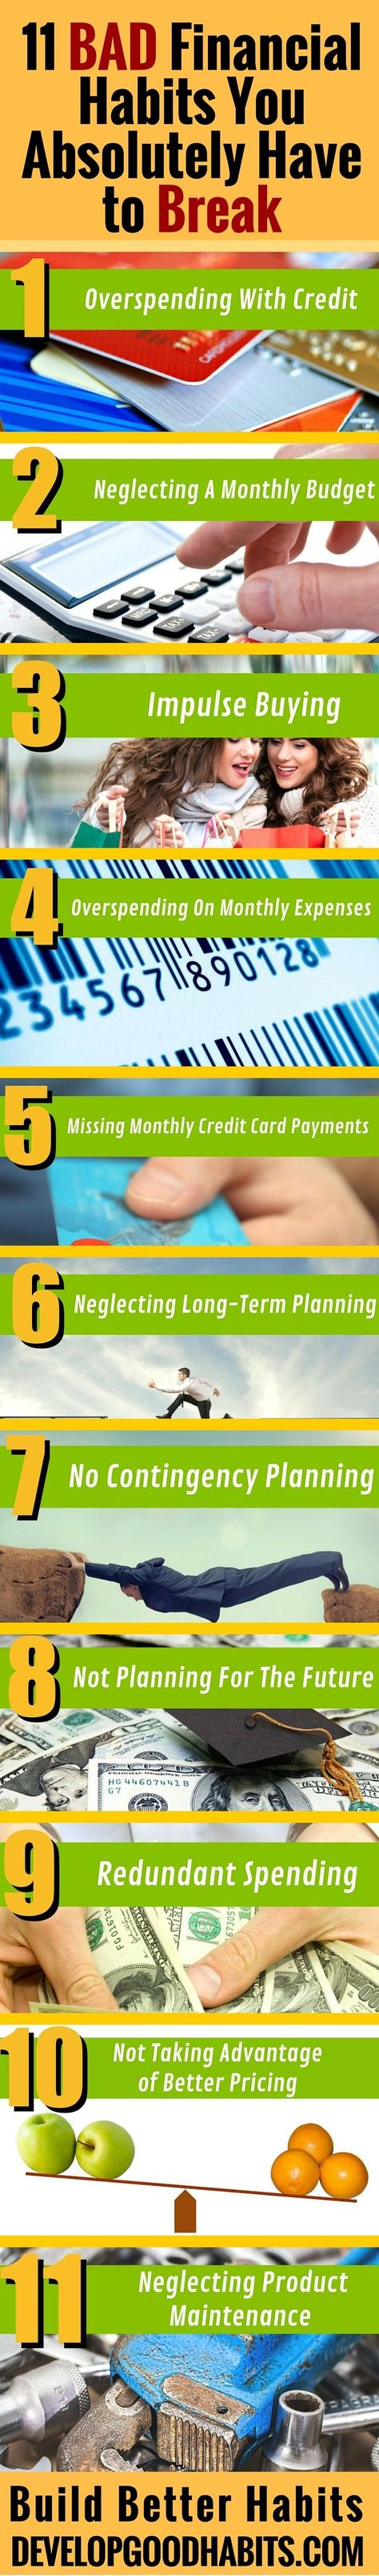 11 Good Financial Habits (Tips for Monetary Success and Stability)